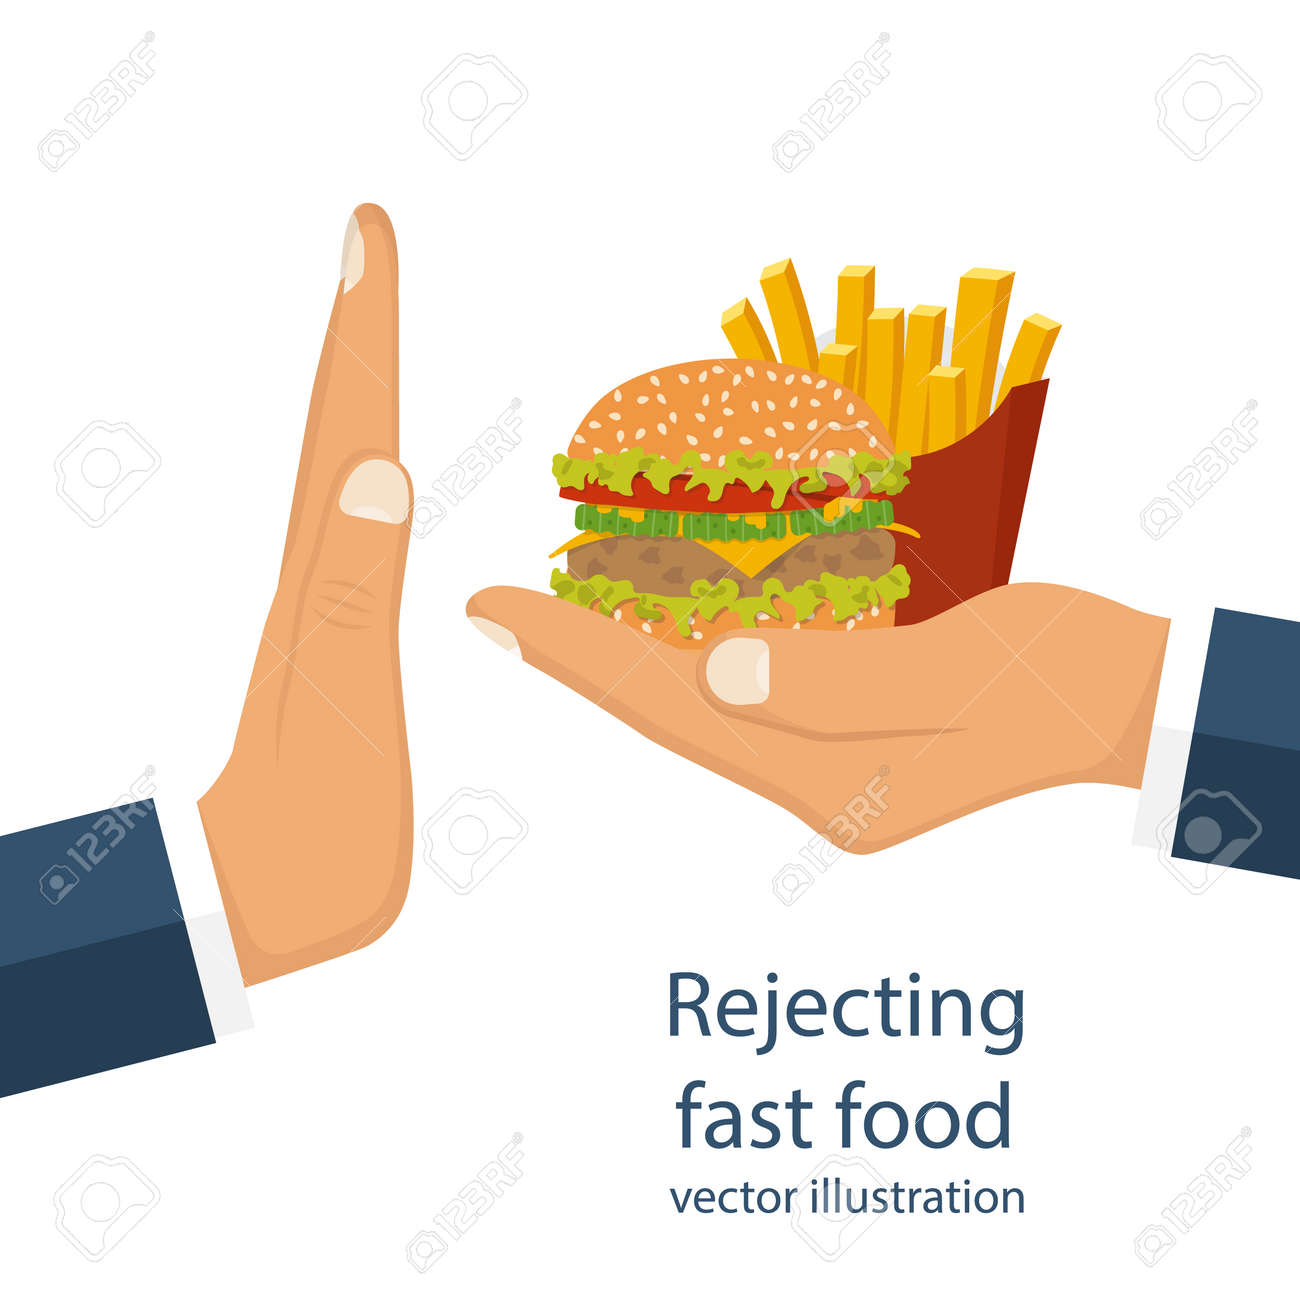 rejecting the offered junk food gesture hand no rejecting rejecting the offered junk food gesture hand